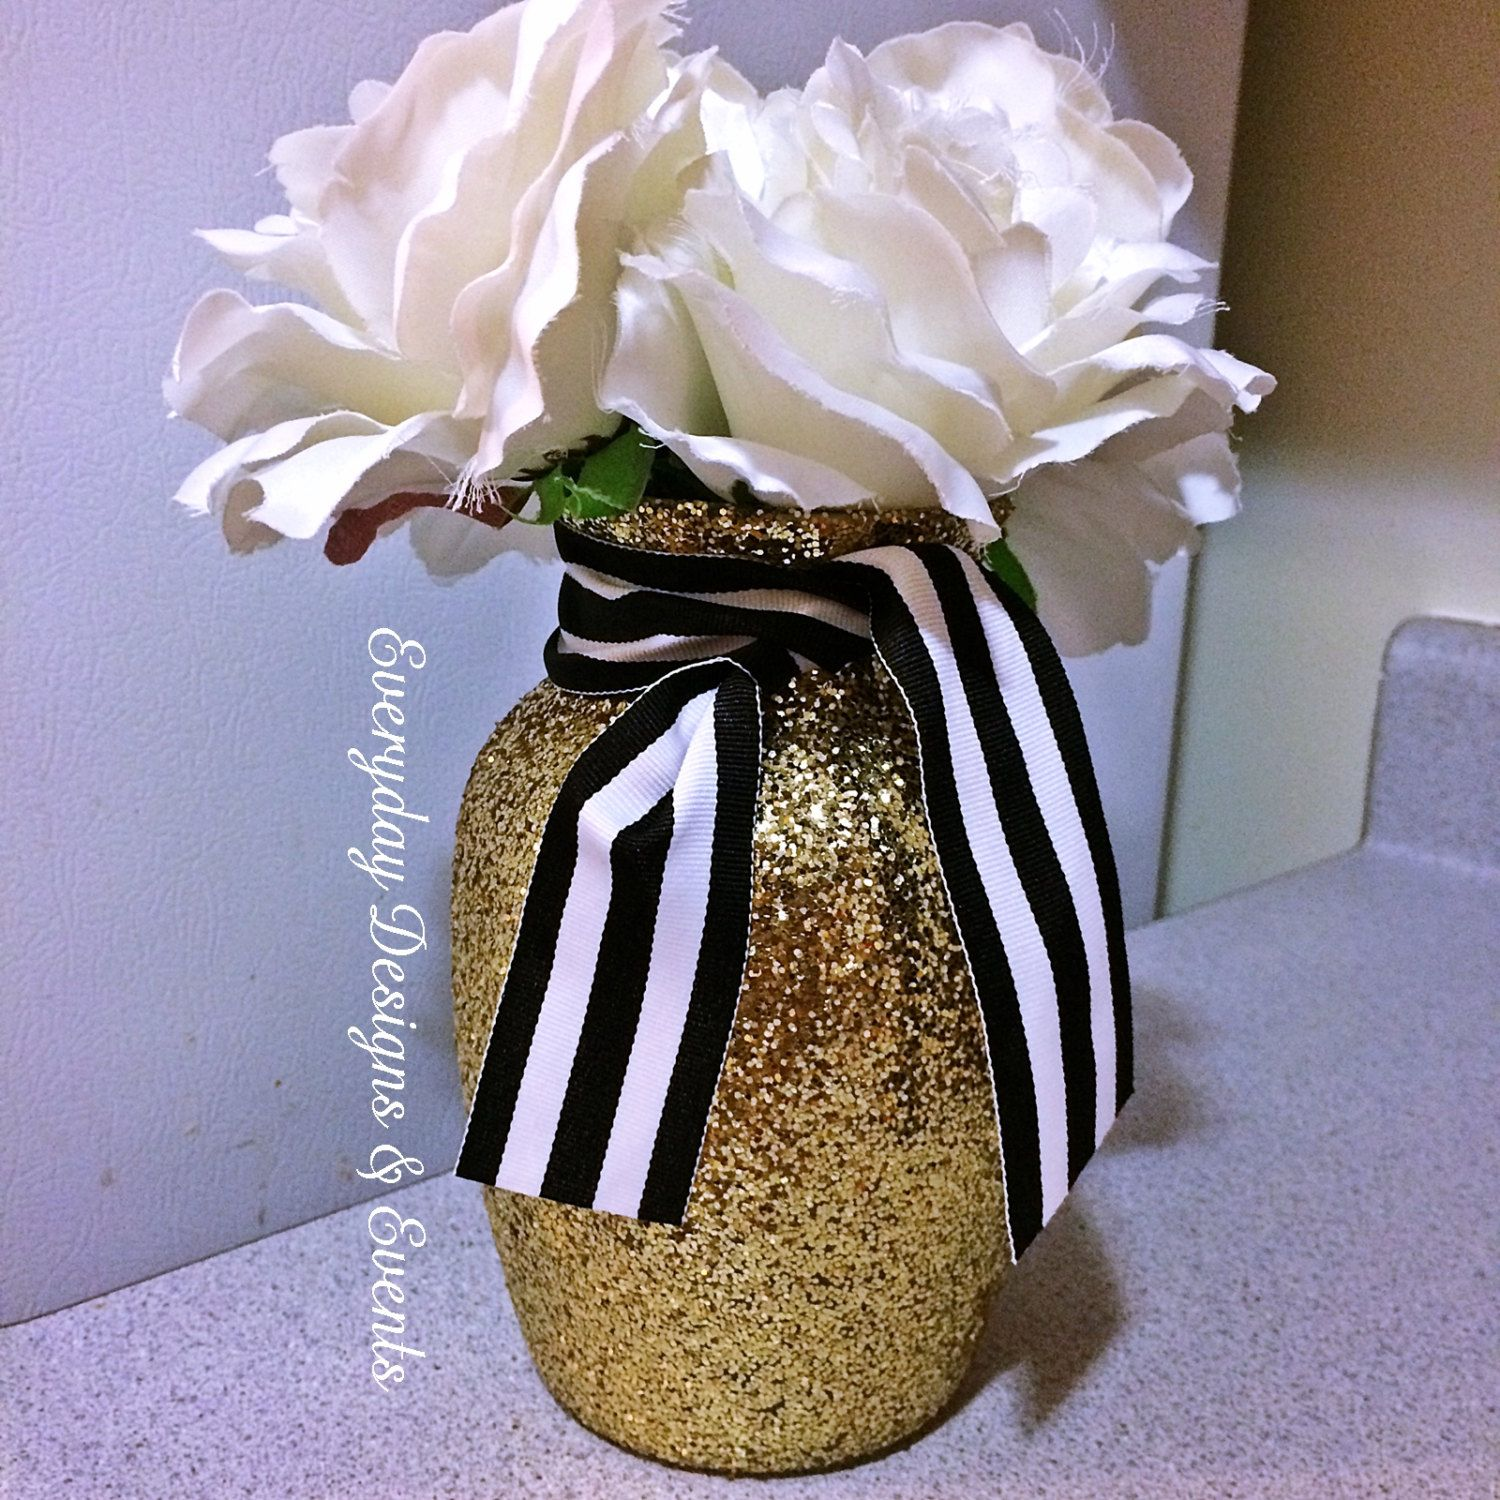 Kate spade inspired decorations you can even order hot pink get your gold black and white vases now you can even get hot pink ribbons to match your theme reviewsmspy